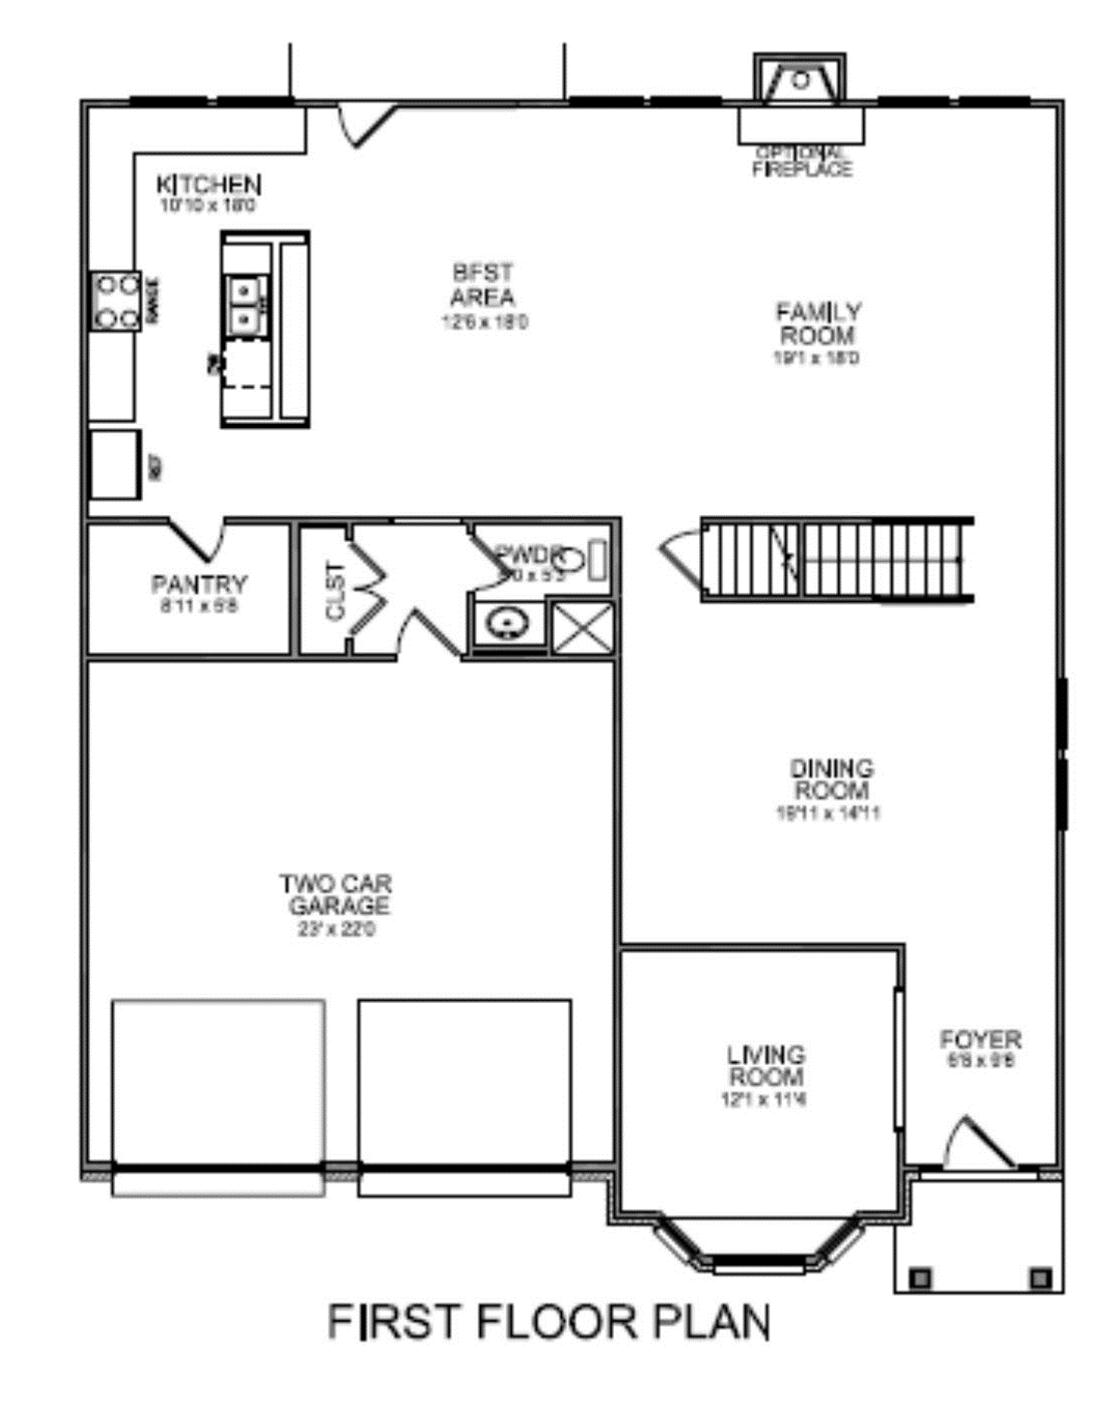 mooreshomes   housefloorplans ranch 799 further Courtyard House Plans moreover 30497 moreover Floor Plans And Rates further Solar Adobe House Plan 1870. on home plans with large utility room